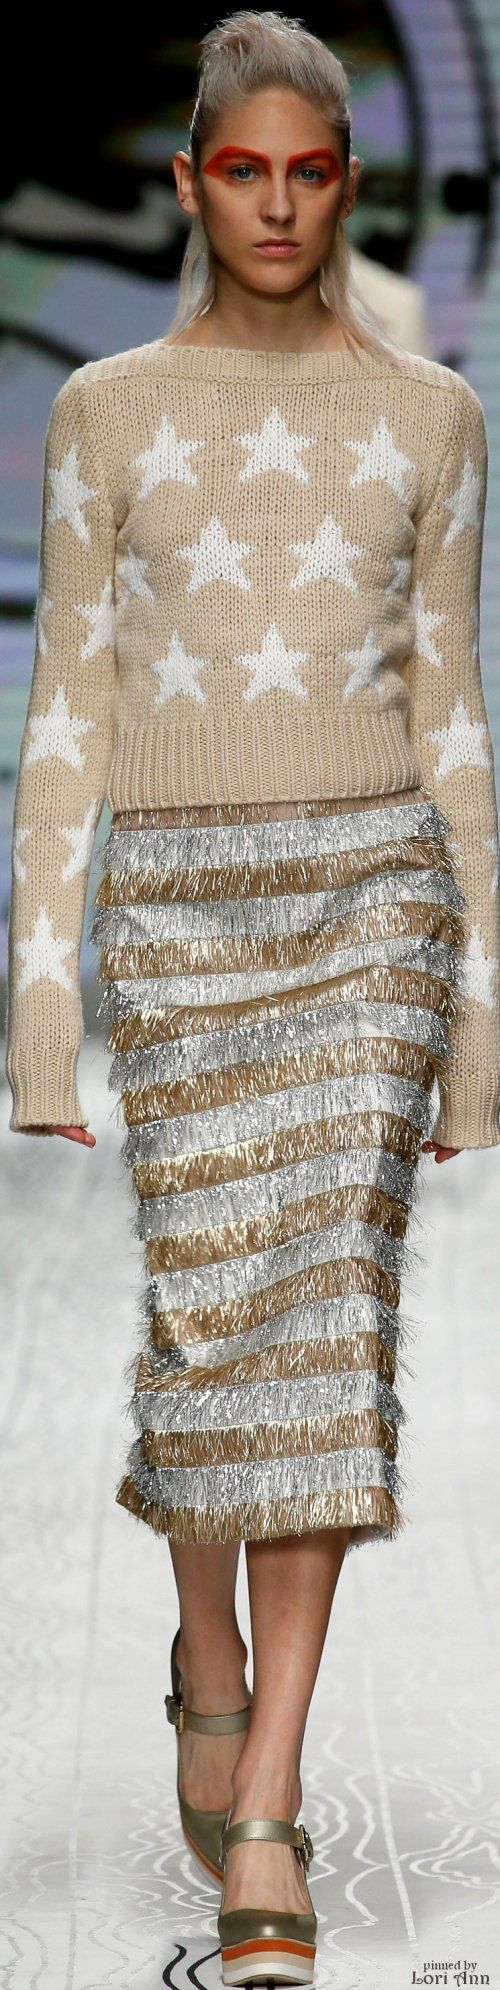 ➳♔Max Mara Spring 2016 RTW women fashion outfit - silver and gold - stars sweater clothing style apparel @roressclothes